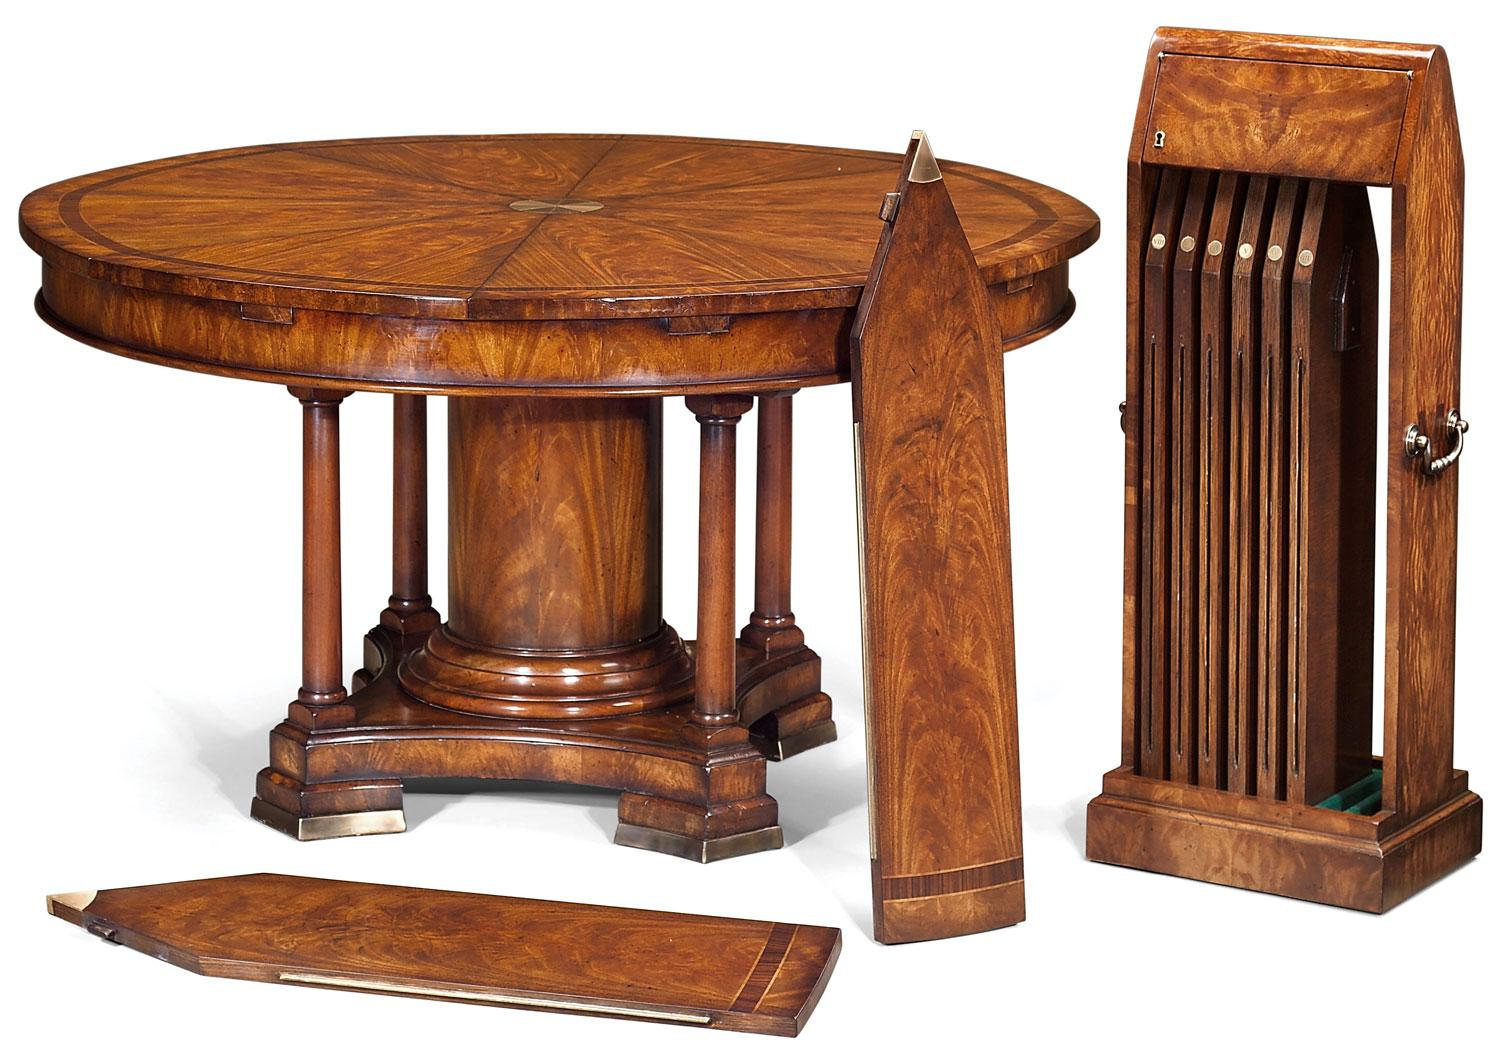 Expanding Jupes Table In Crotch Mahogany   Dia 60 To 84